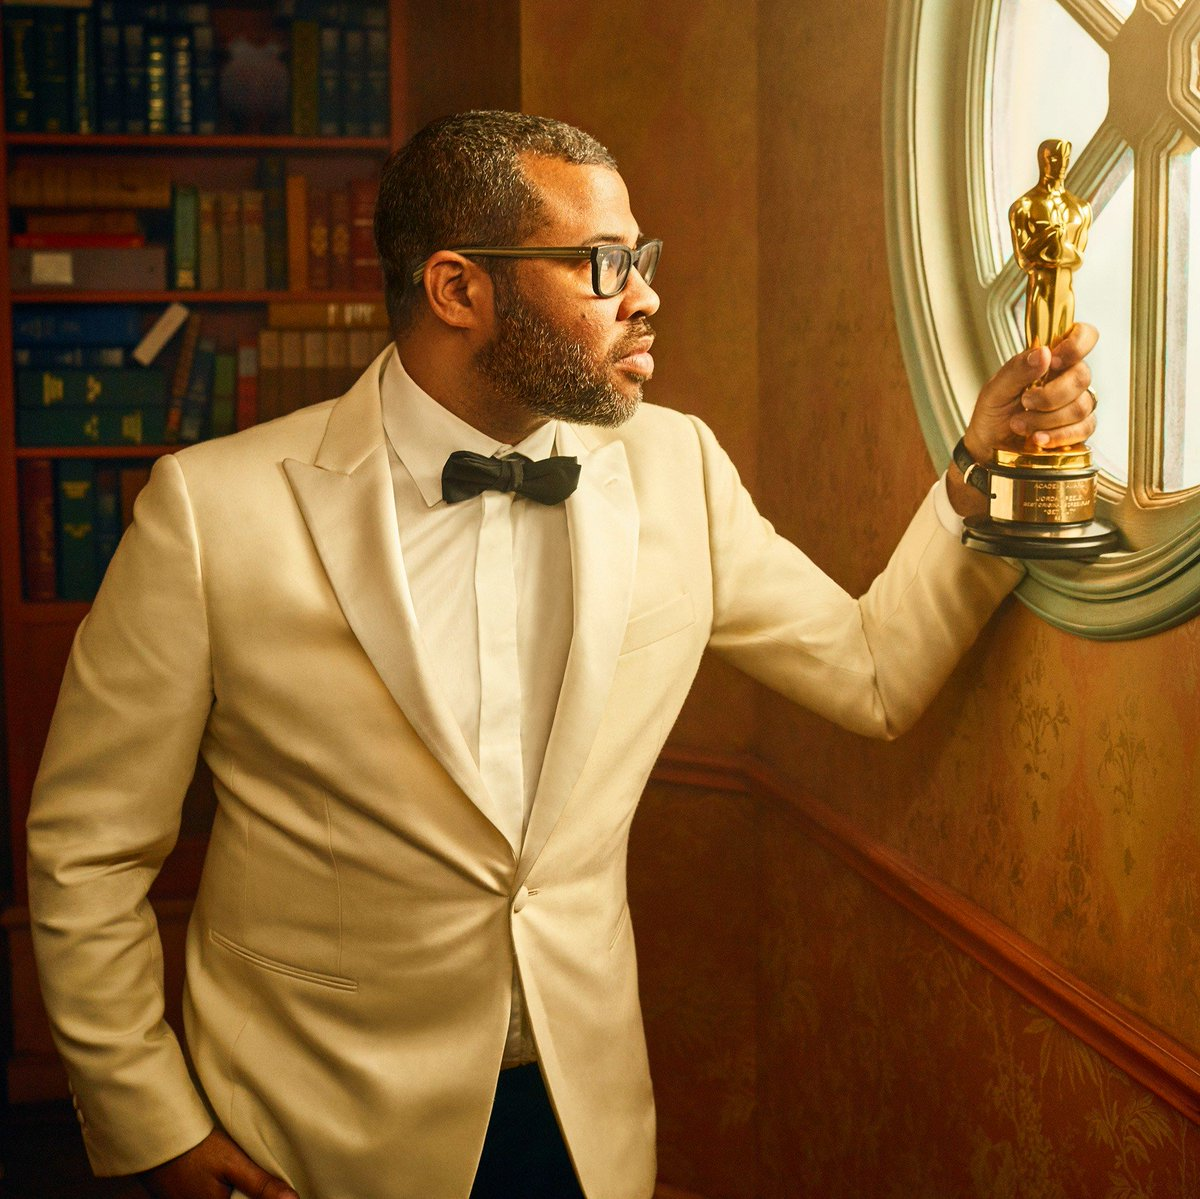 In 2018, #JordanPeele became the first African-American screenwriter to win the #AcademyAward for #BestOriginalScreenplay. He won the award for #GetOutpic.twitter.com/X7xUDr2HRY